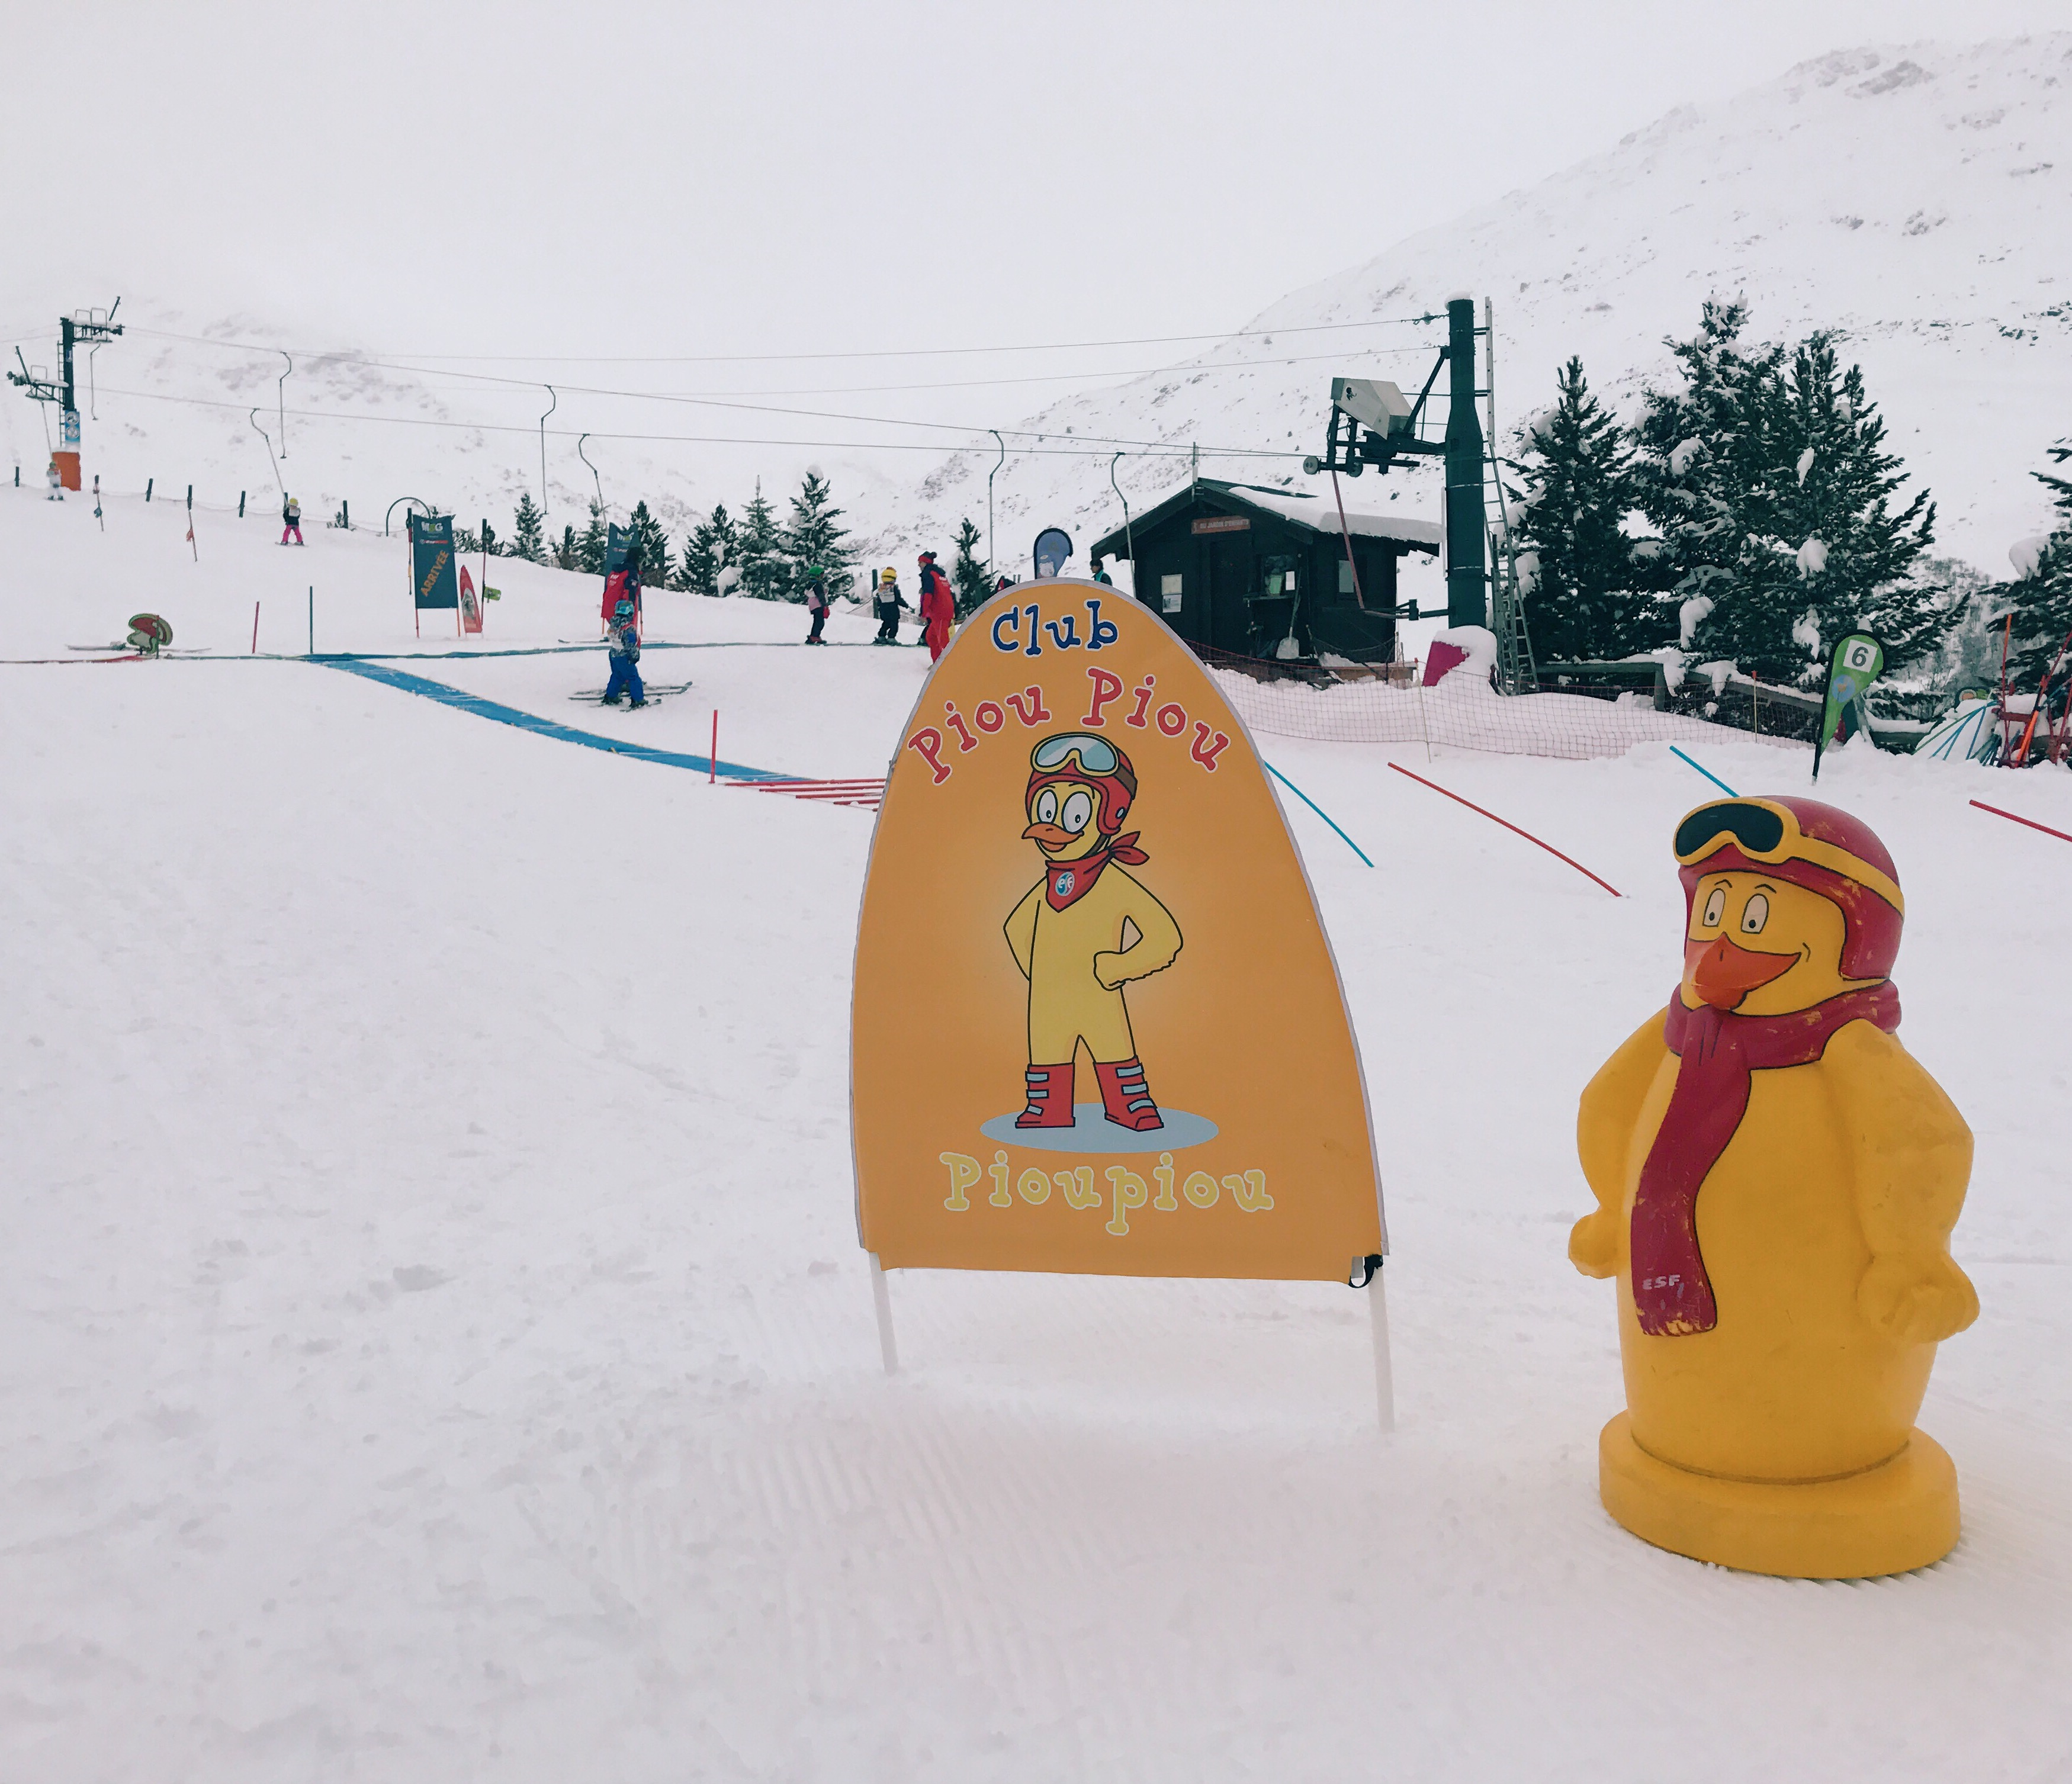 Skiing on a budget? Is it possible? -